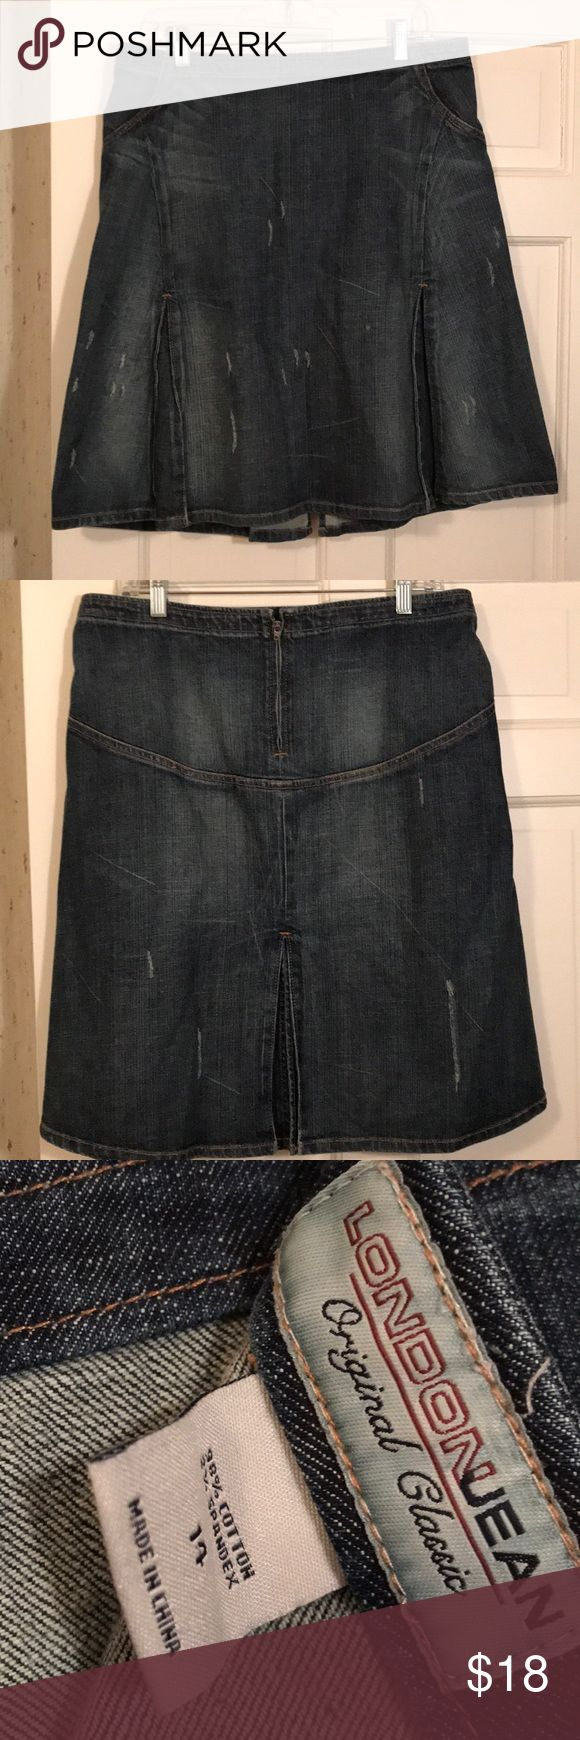 London Jeans A-line distressed Jean skirt London Jeans A-line distressed Jean skirt with kick pleats. Super cute. EUC. No damages excellent condition. Size 14. Color dark denim blue. No low offers. Price firm.   DISCLAIMER: You buy it, you keep it! If you are a habitual returner, do not buy from my closet. I am not responsible for you changing your mind about your purchase if you don't like what you received, or the size or color isn't right. Don't open a case. London Jean Jeans